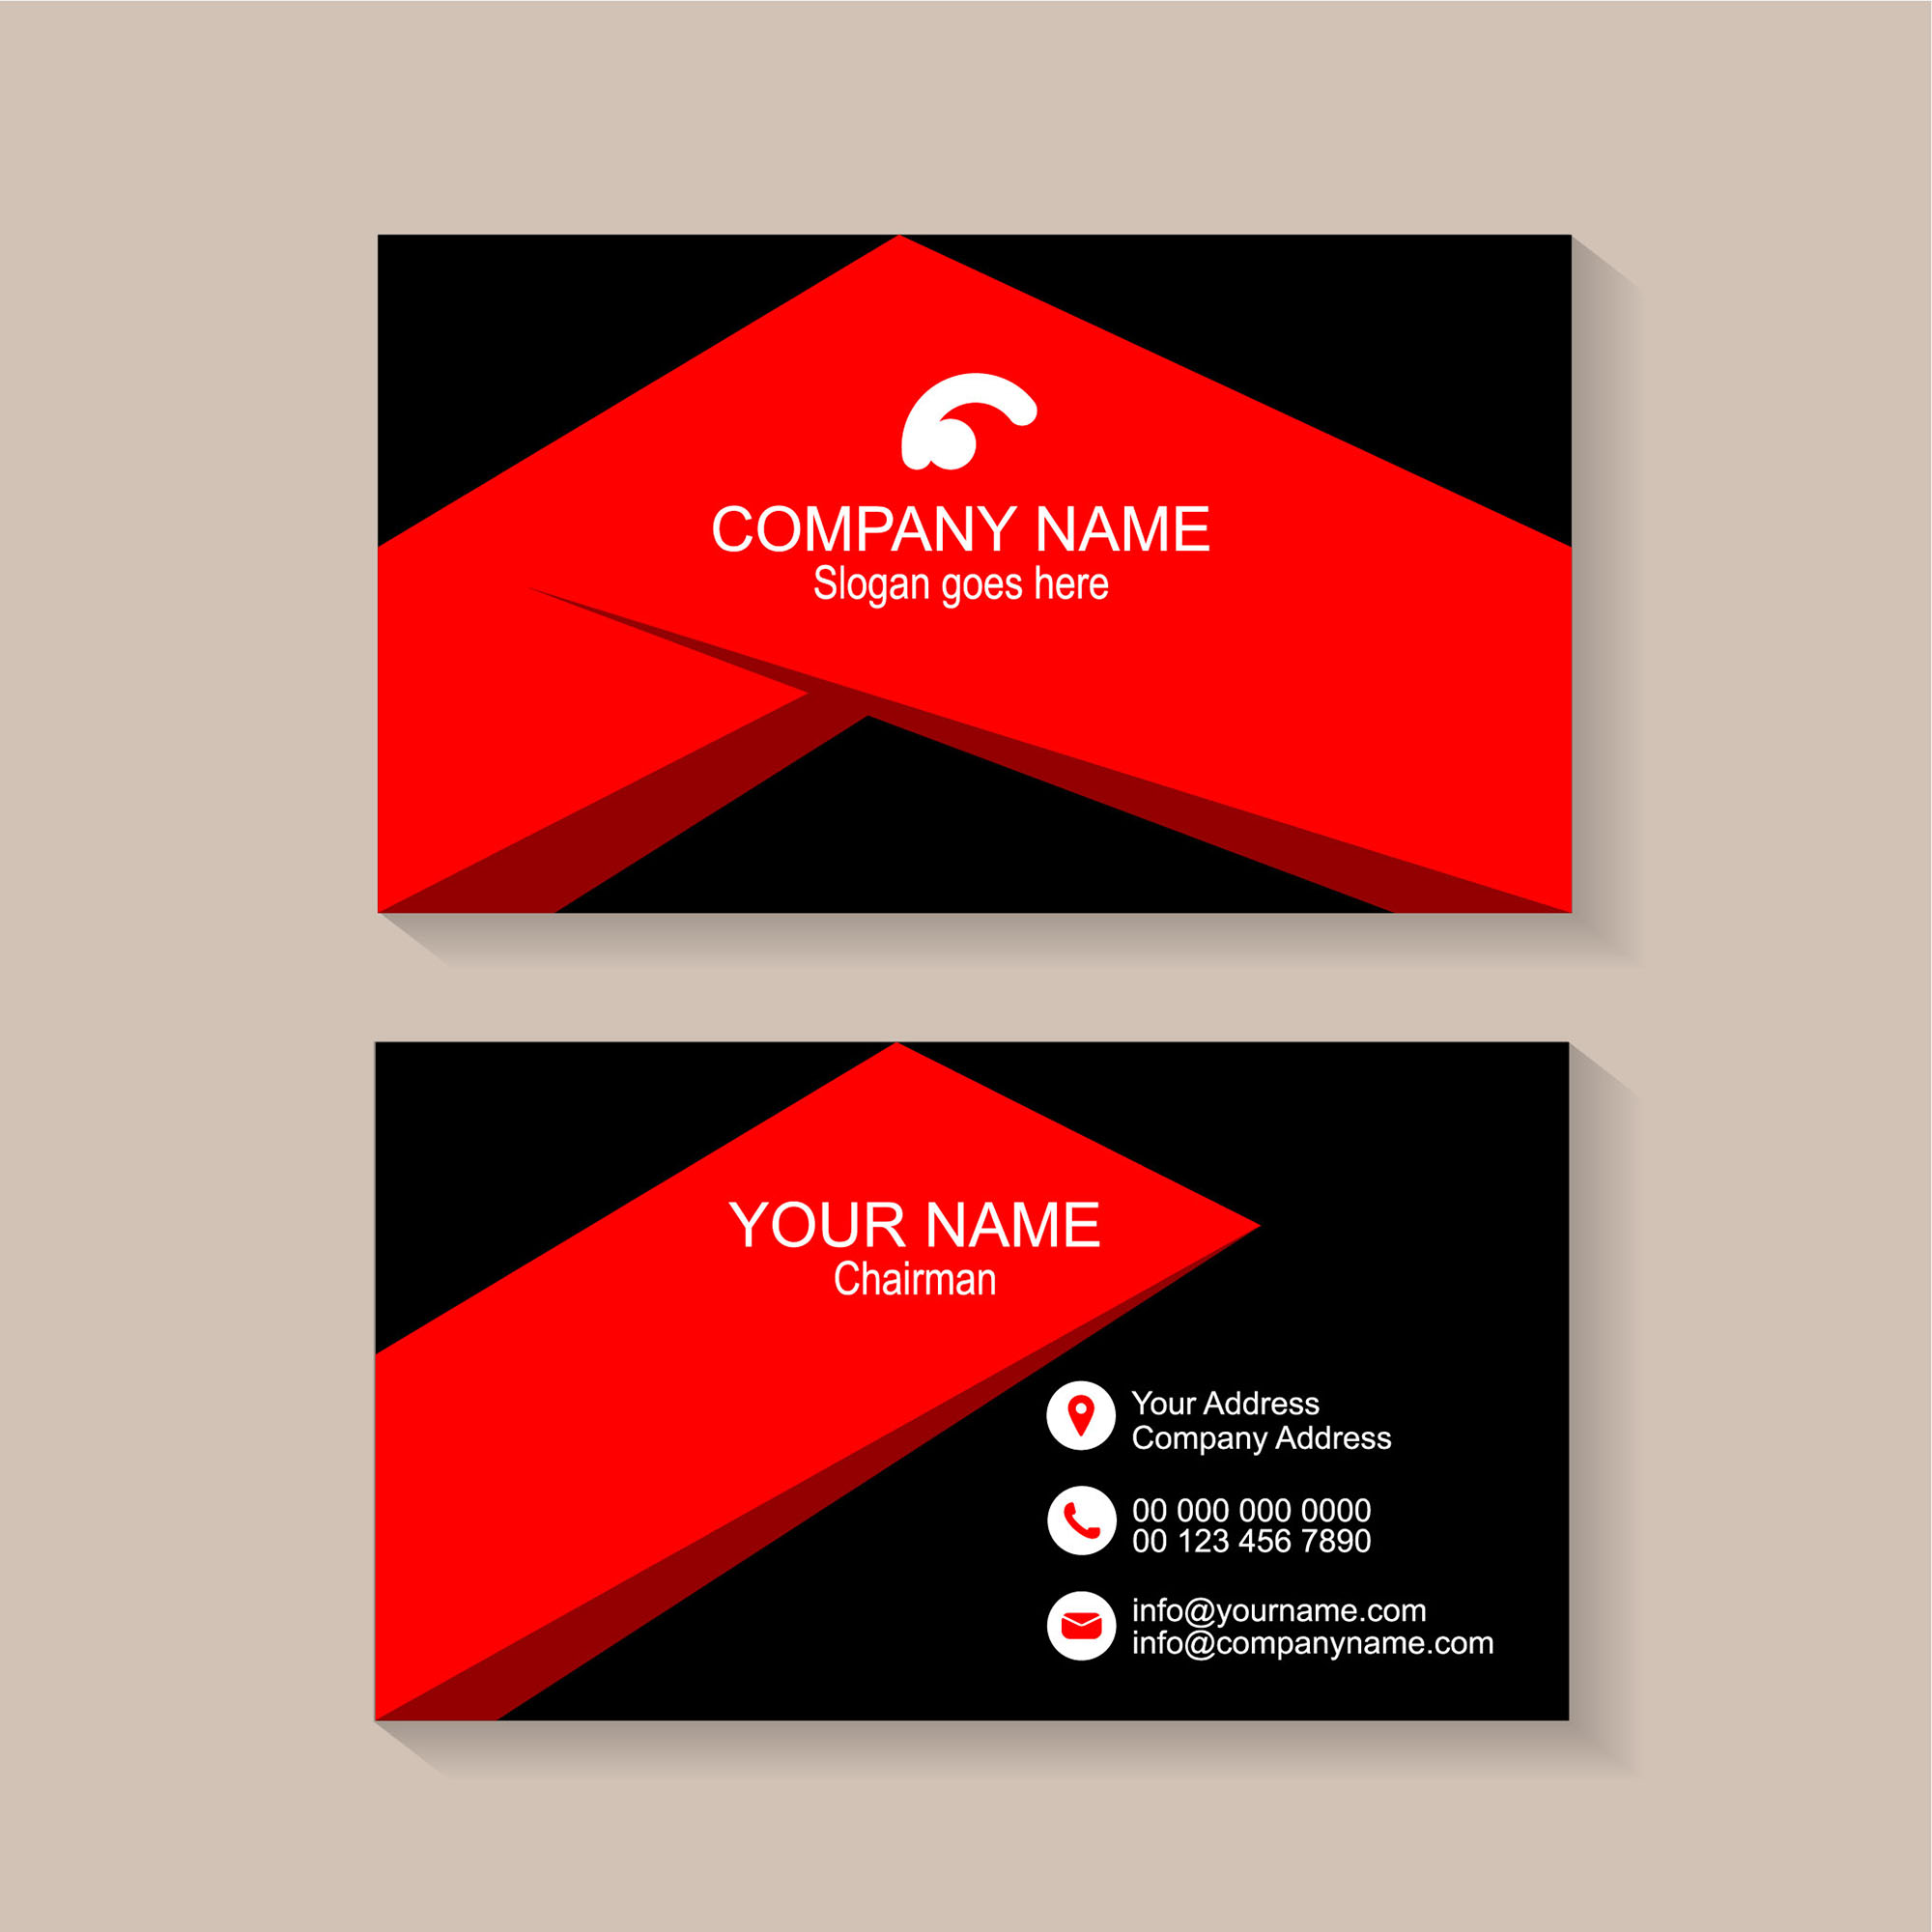 Business card template design free download wisxi business card business cards business card design business card template design templates cheaphphosting Image collections